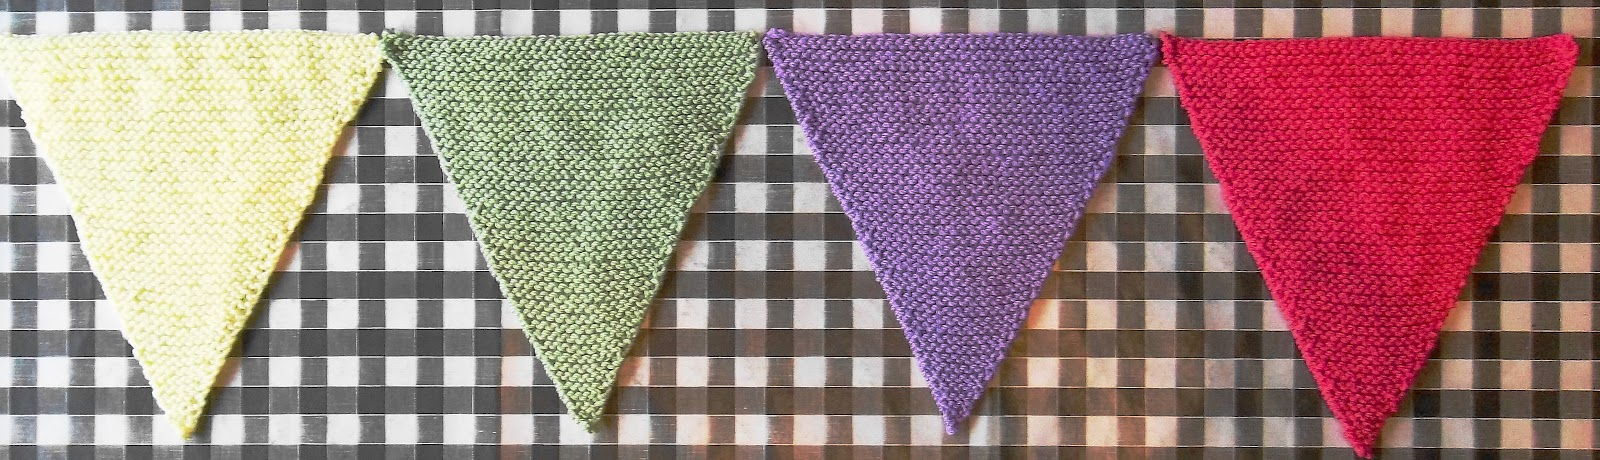 Bunting Knitting Pattern : The Design Studio: Free Knitting Pattern. Knitted Bunting. Flags.